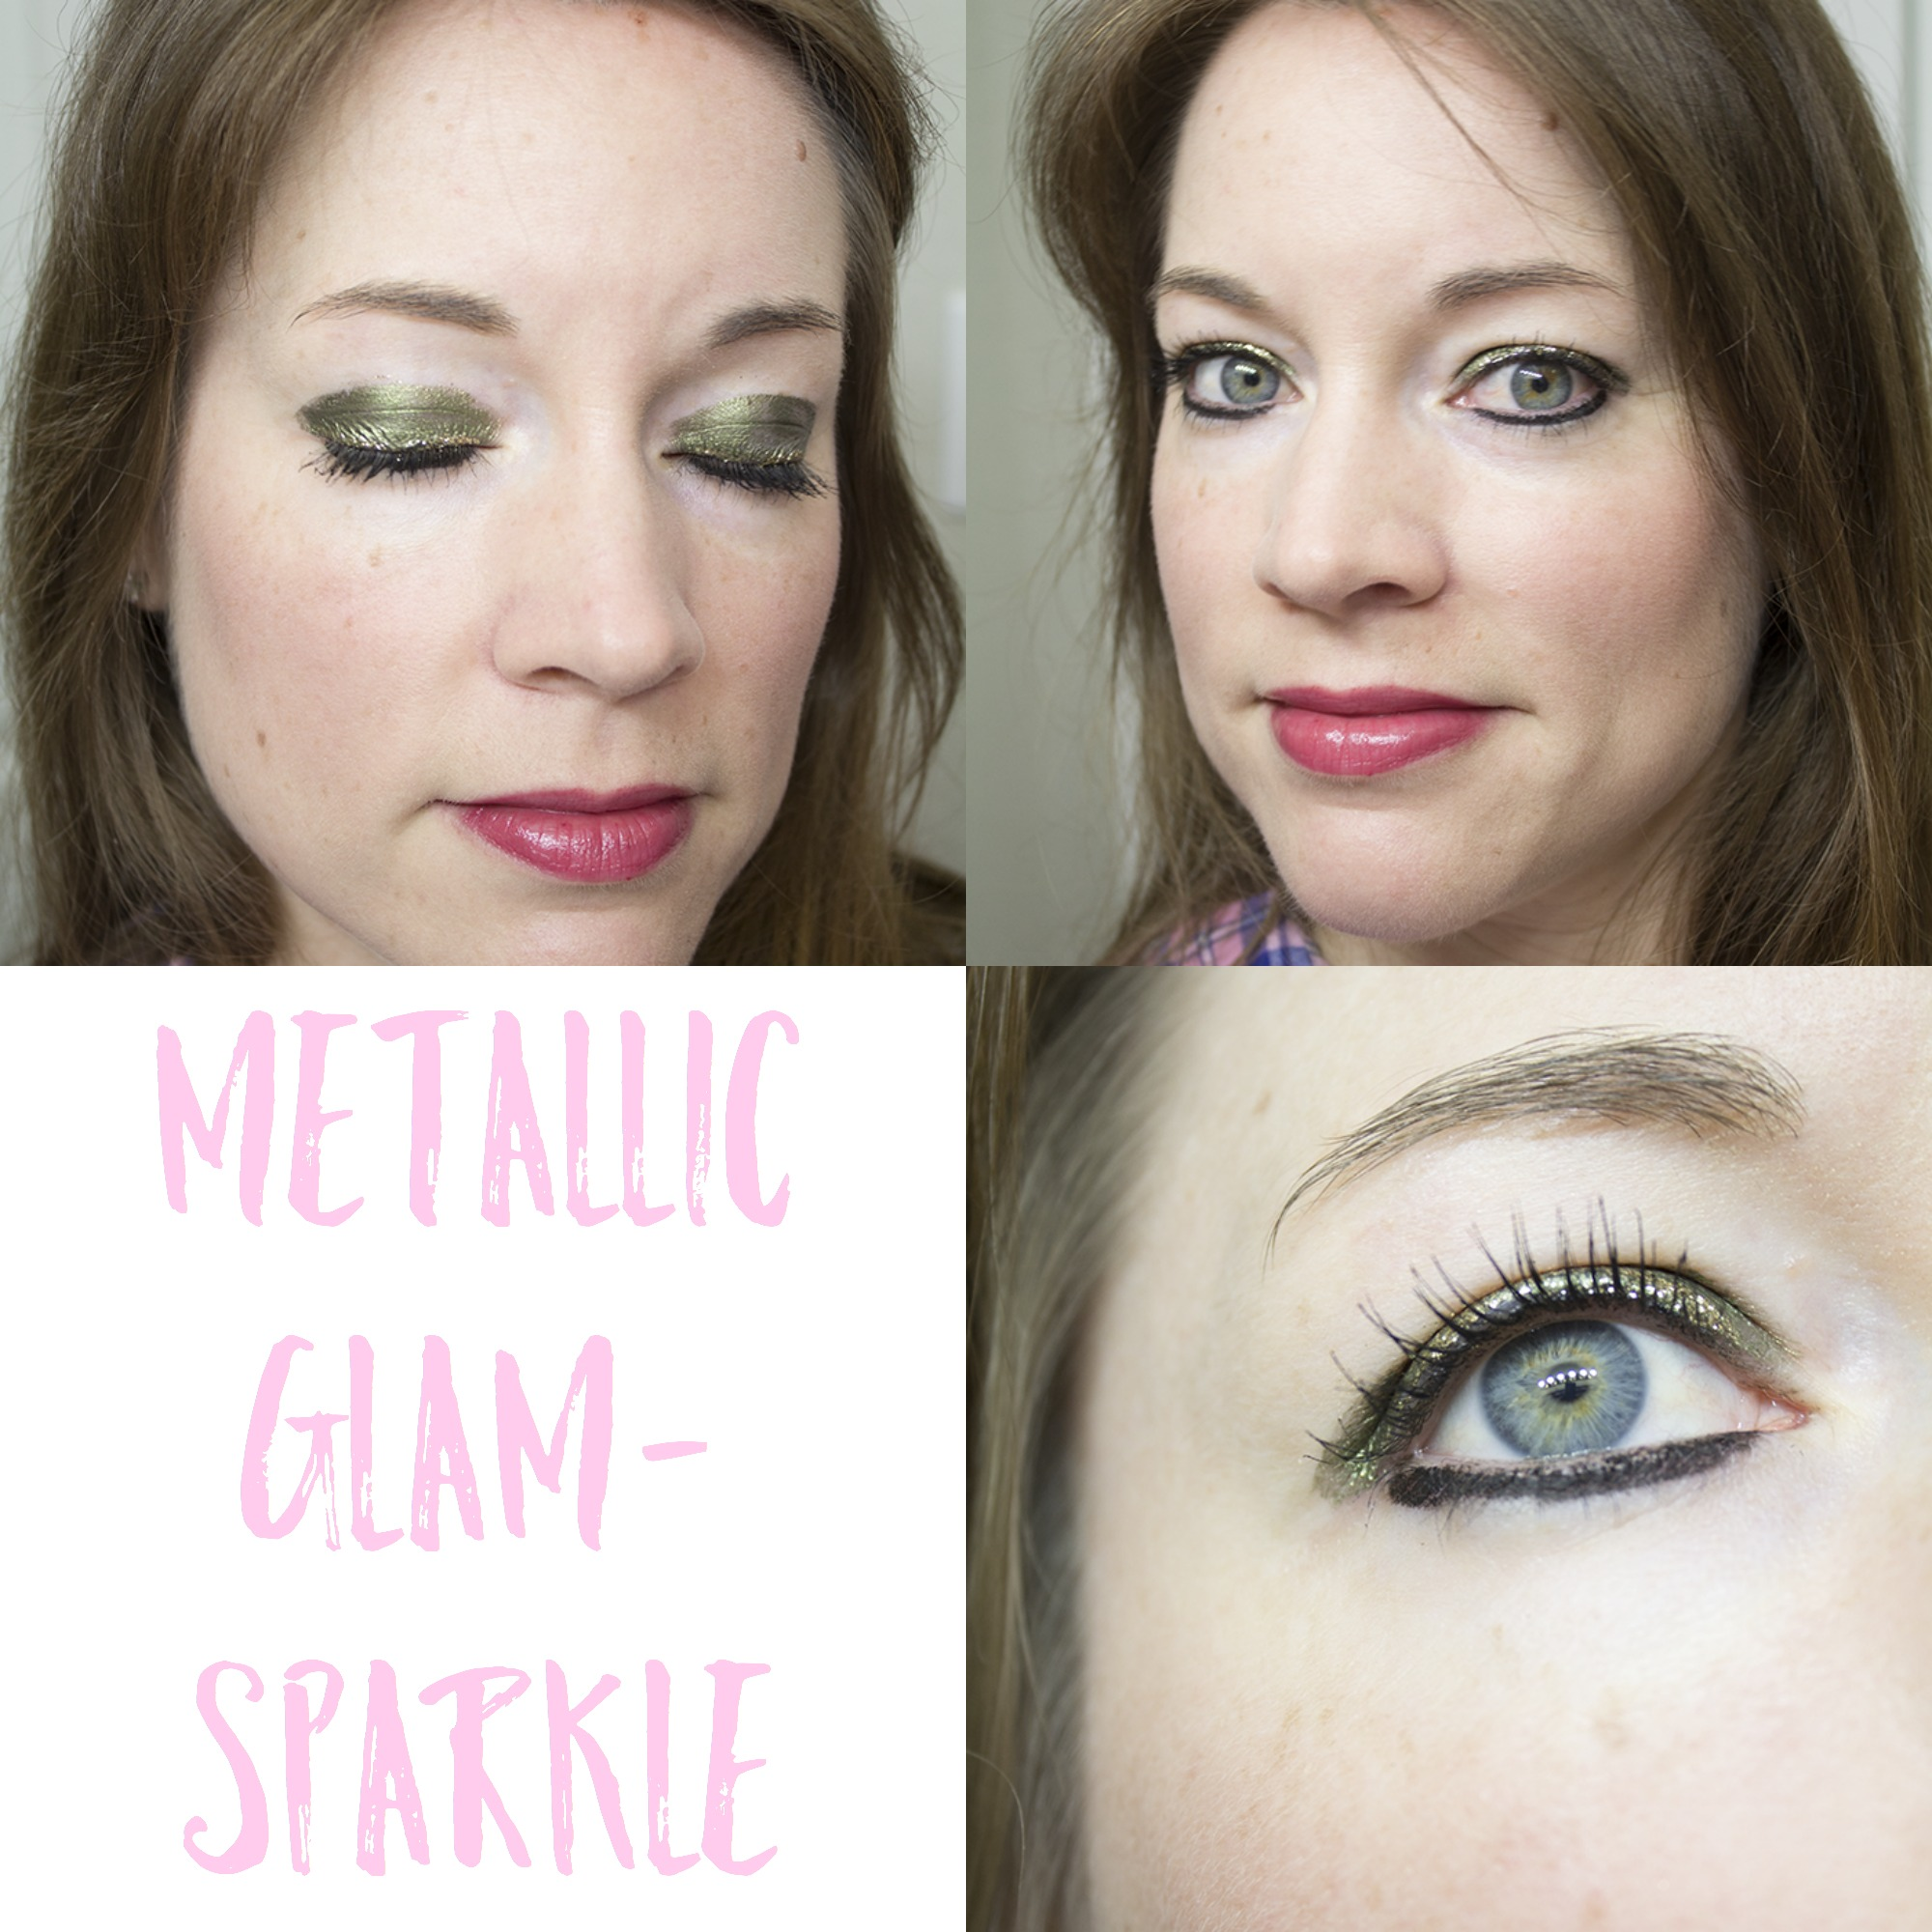 Metallic Glam Sparkle Look